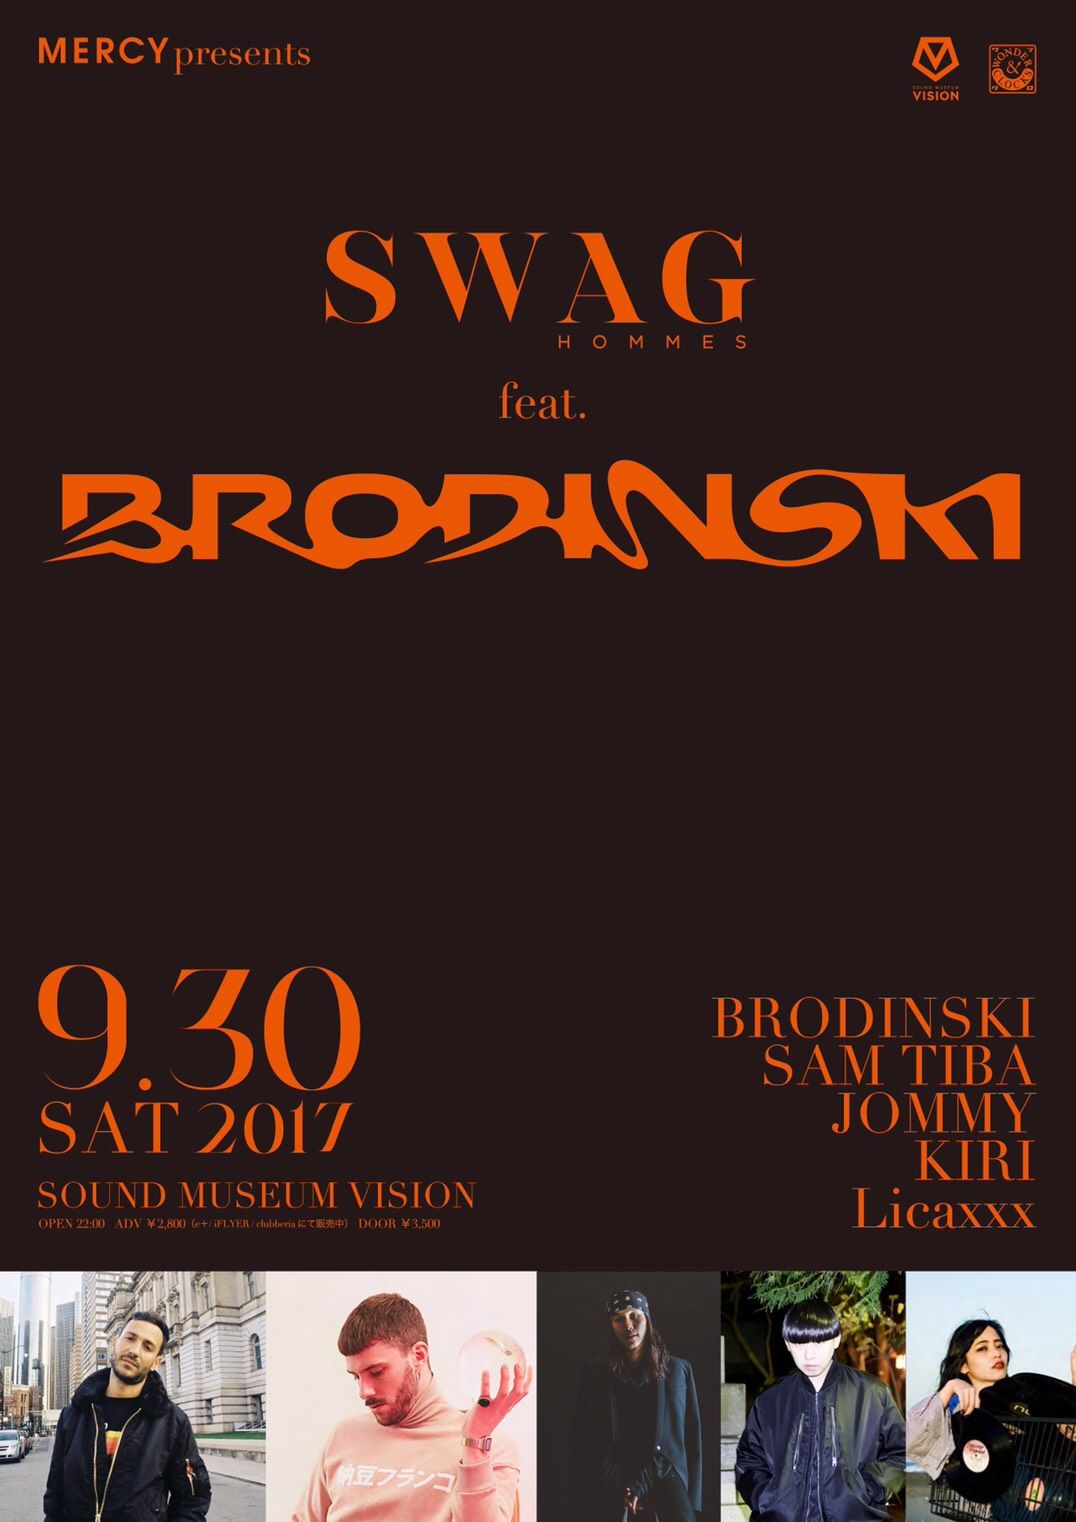 MERCY presents SWAG HOMMES feat. BRODINSKI